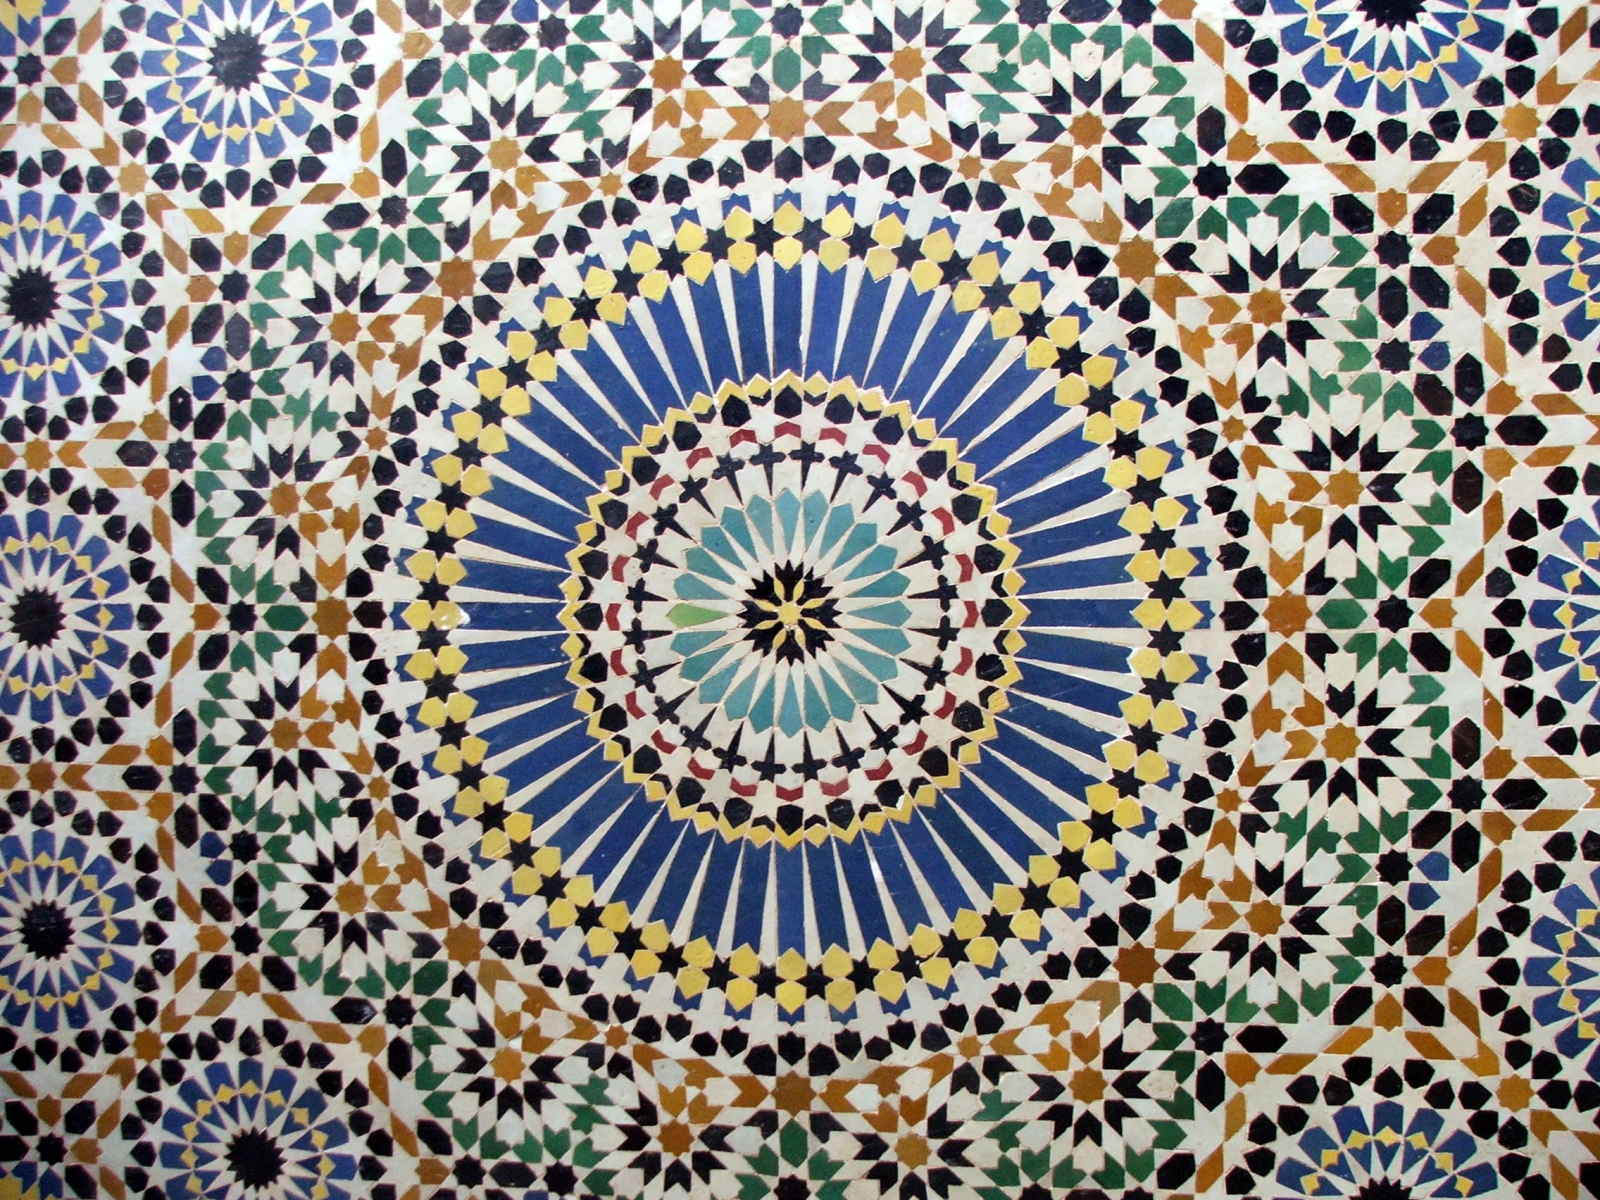 Arabesque Art Gallery Manama, International House: Film Screening: Islamic Art | Djinni ...